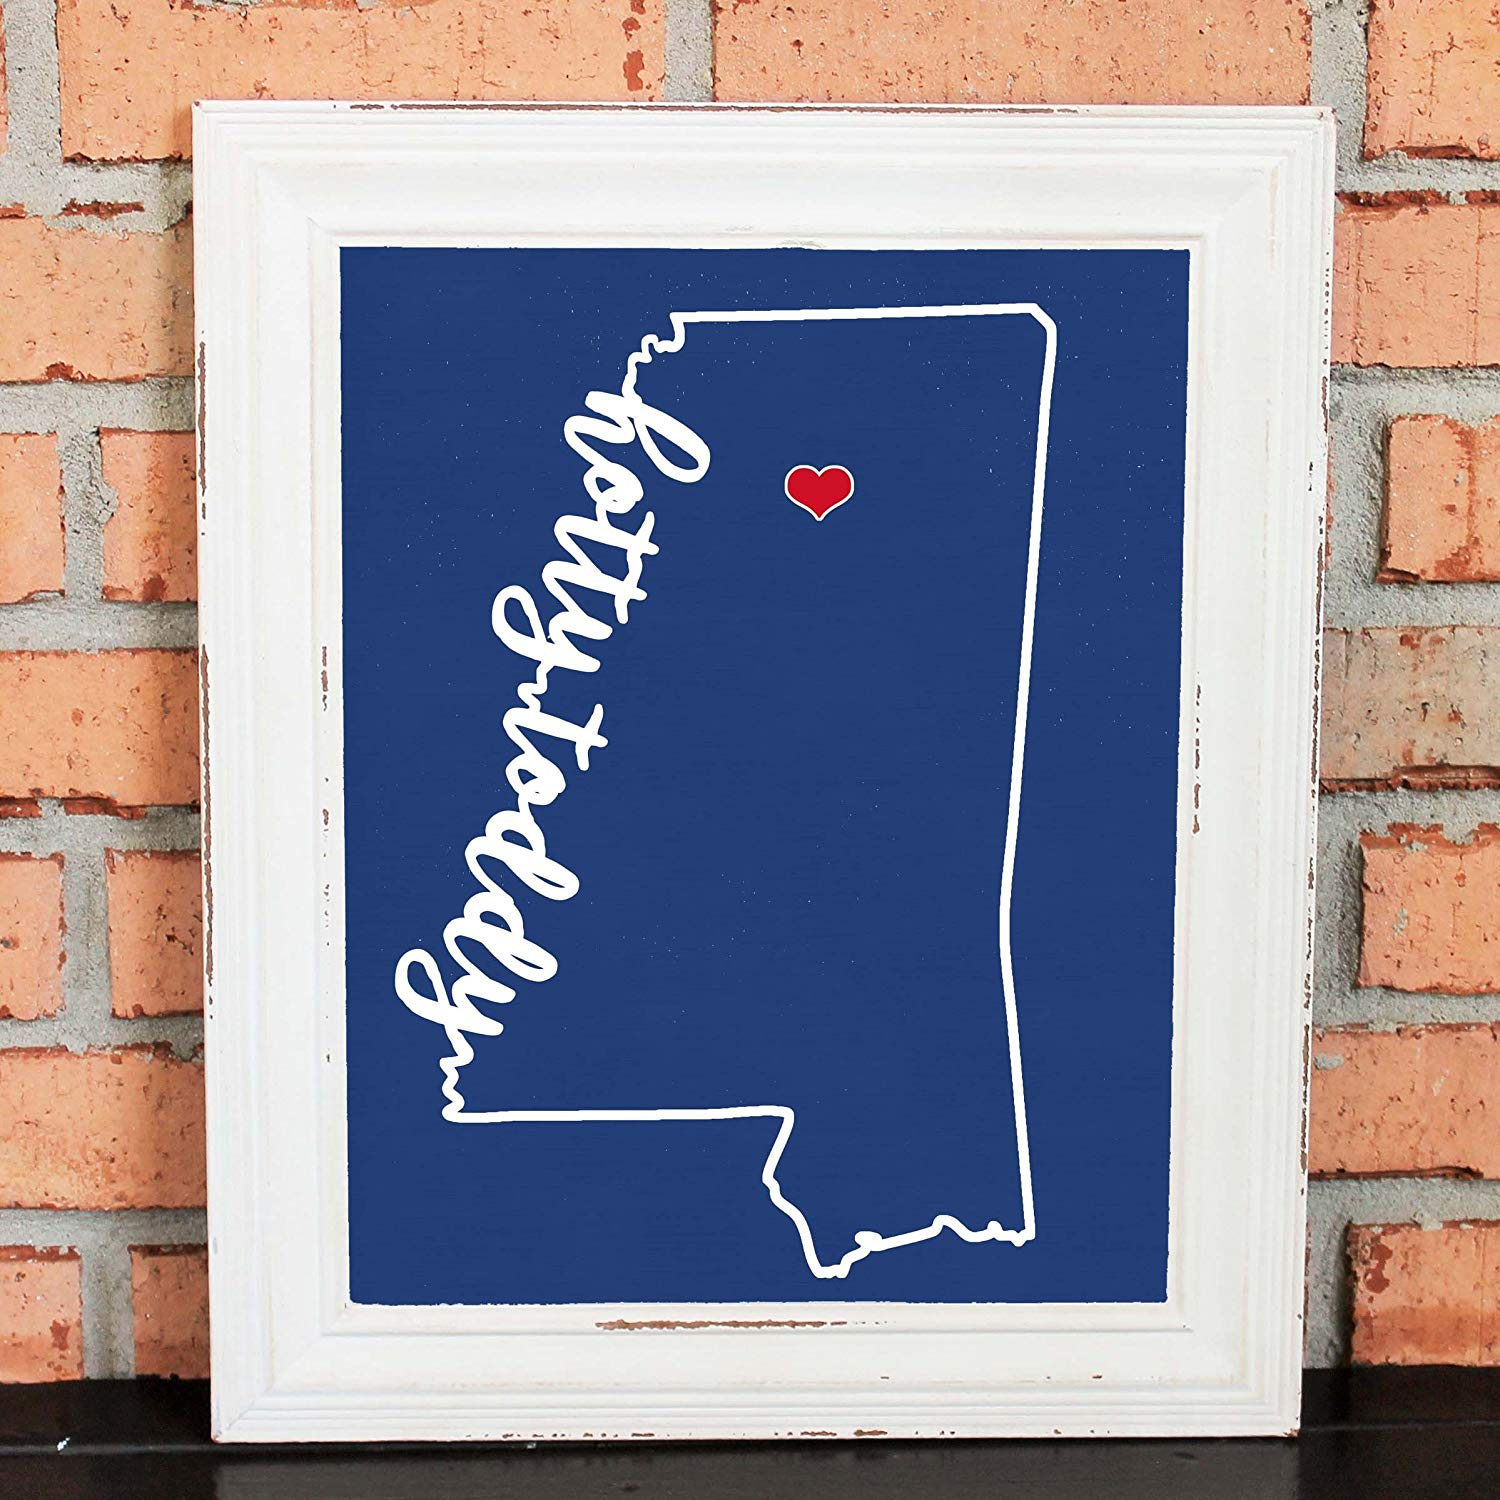 HOTTY TODDY! College Pride Wall Art - Artwork - Ole Miss Rebels - University of Mississippi - Red and Blue - Man Cave Artwork - College Decor - UNFRAMED Poster Print - Chalkboard Finish